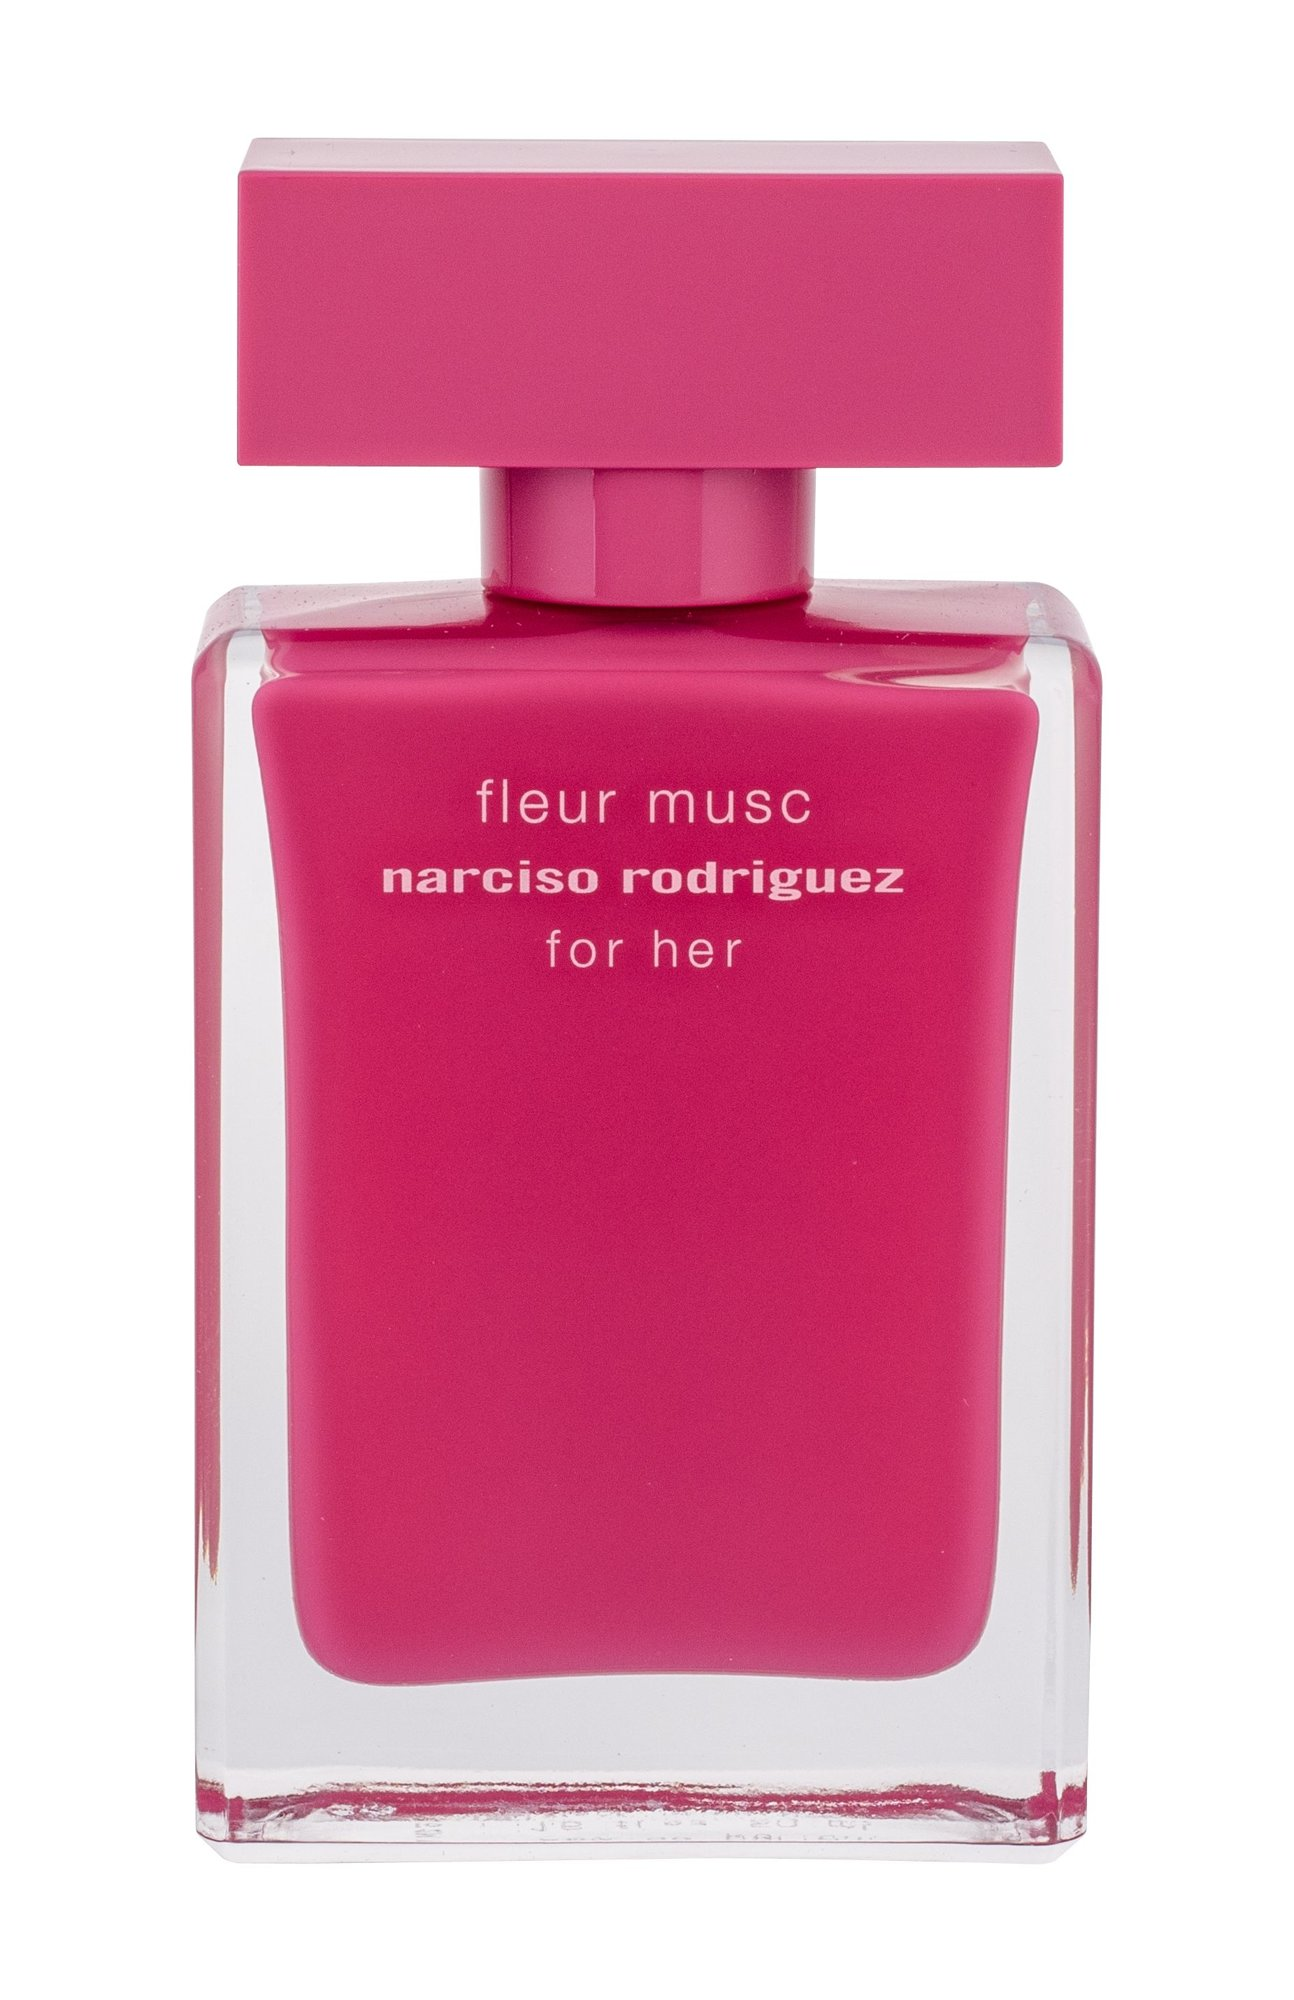 Narciso Rodriguez Fleur Musc for Her EDP 50ml